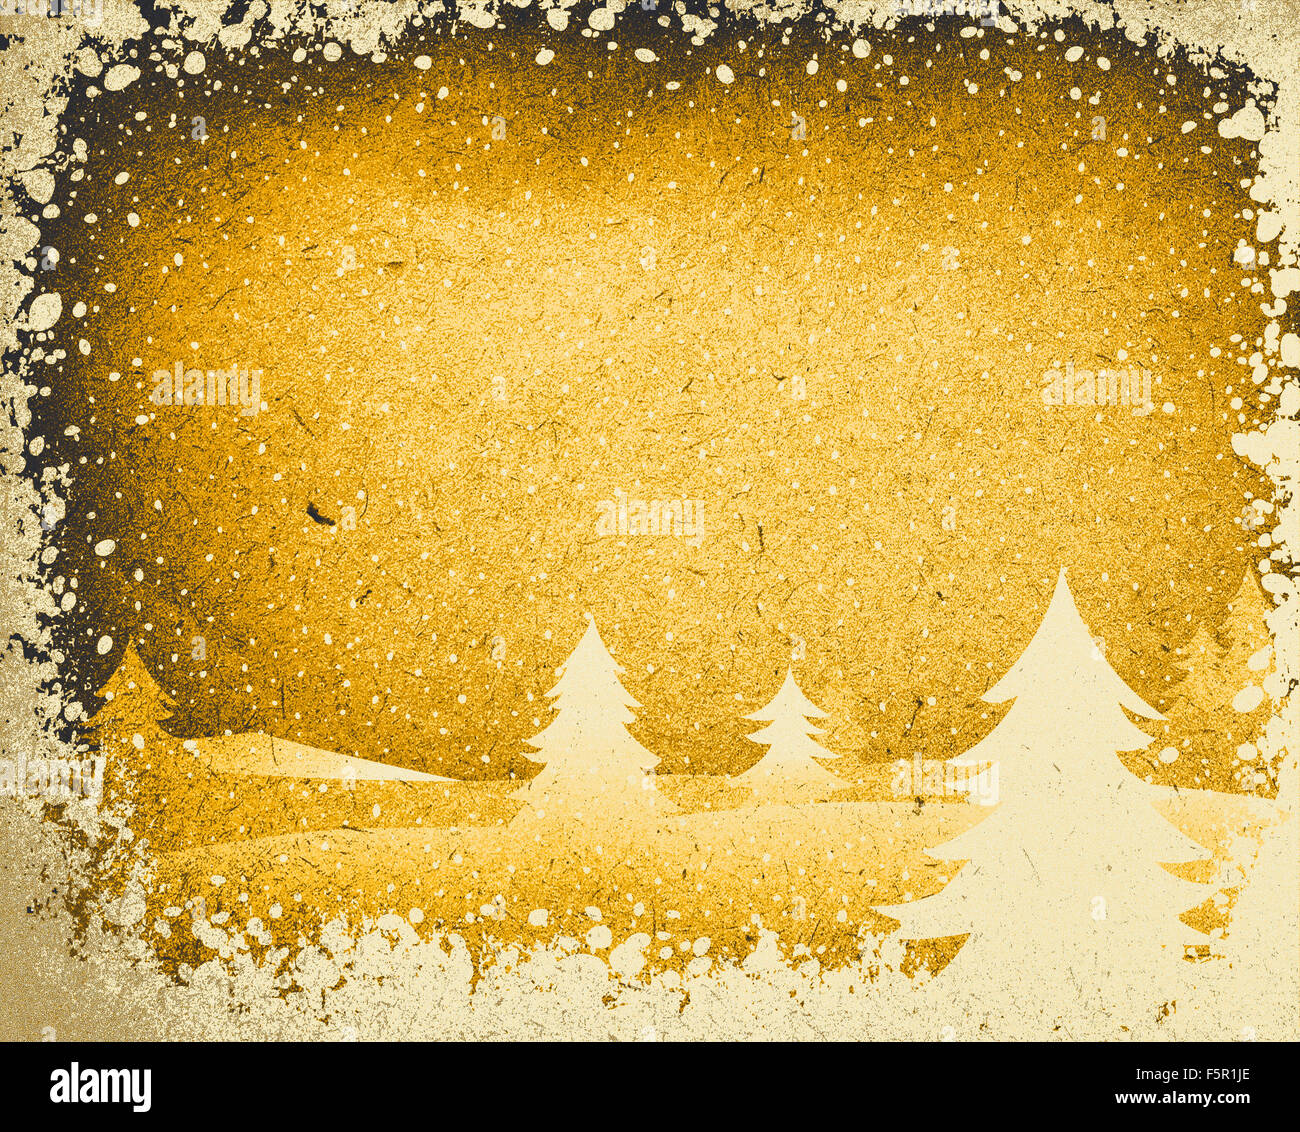 Support things, symbols, background, screen for happy christmas - Stock Image